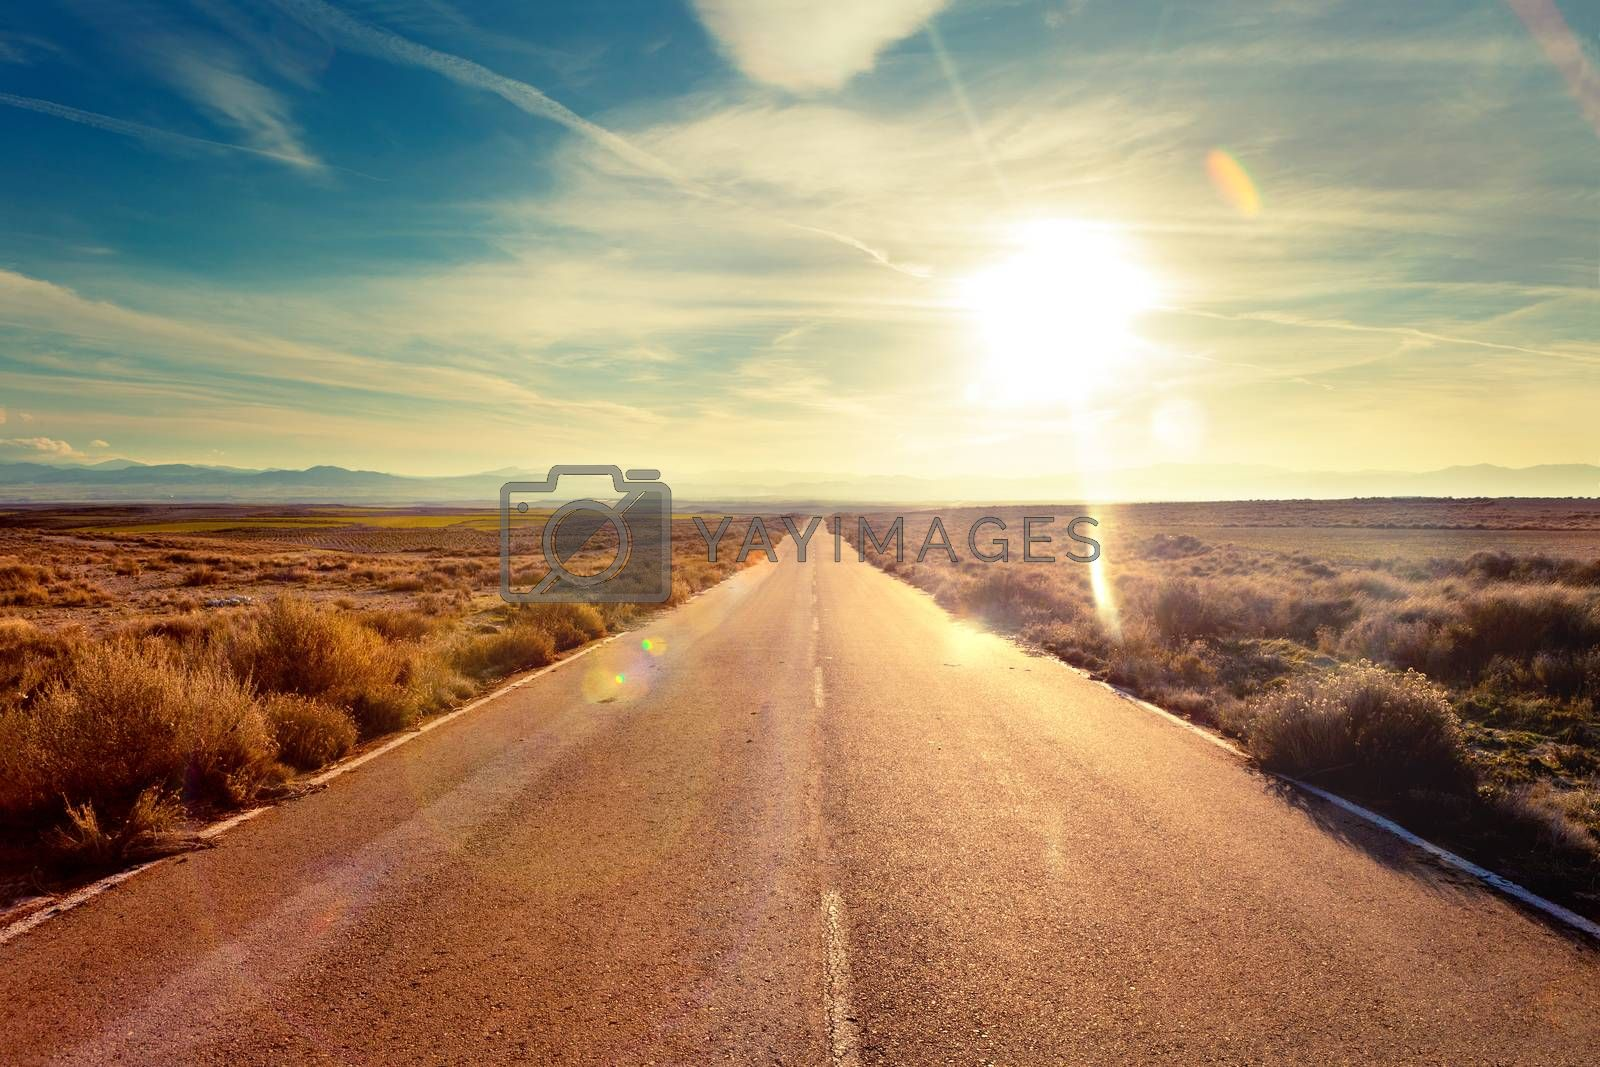 Road through landscape. Road and car travel scenic and sunset.